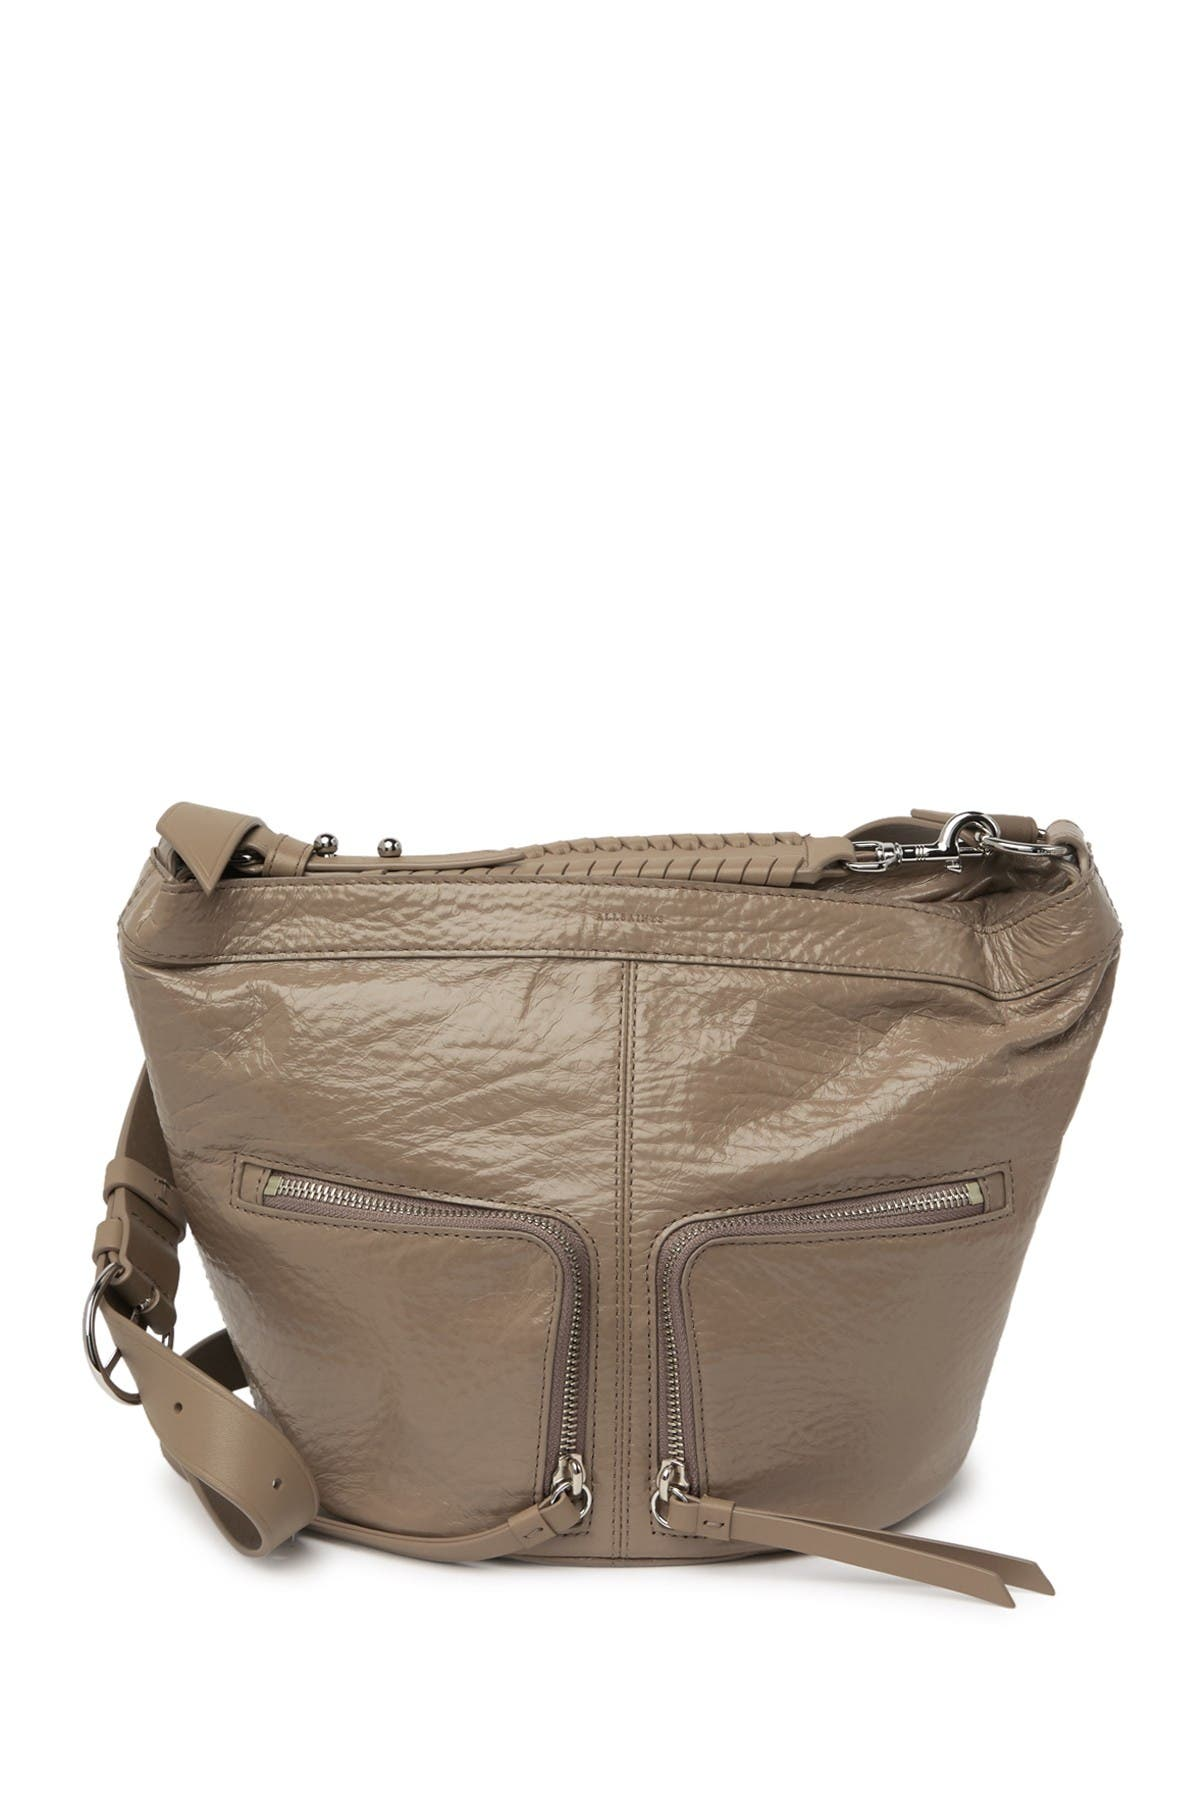 Image of ALLSAINTS Fetch Leather Crossbody Bag